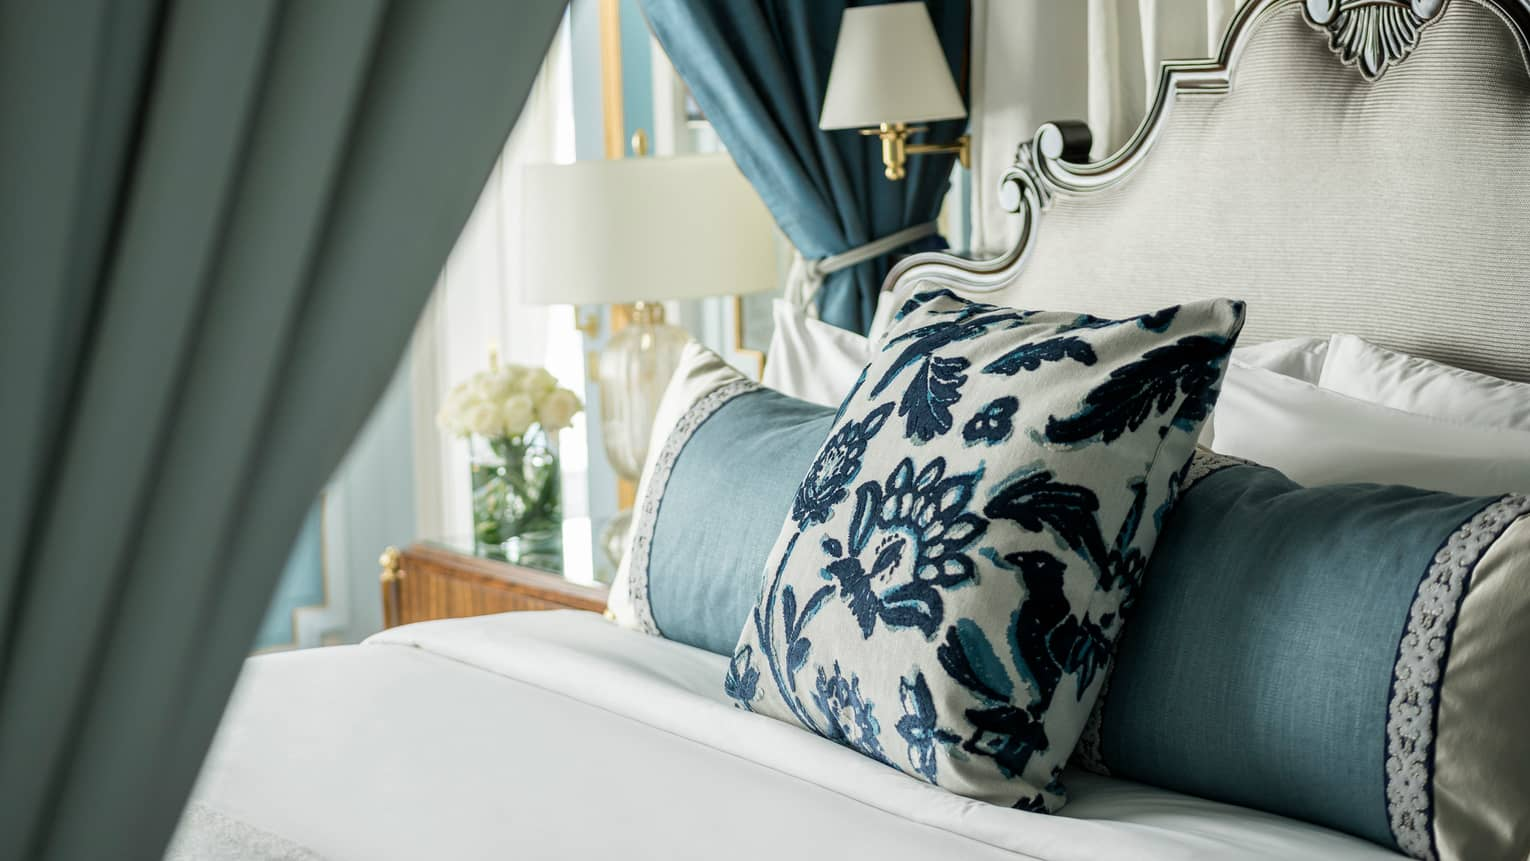 Presidential Suite bed with embroidered pillow